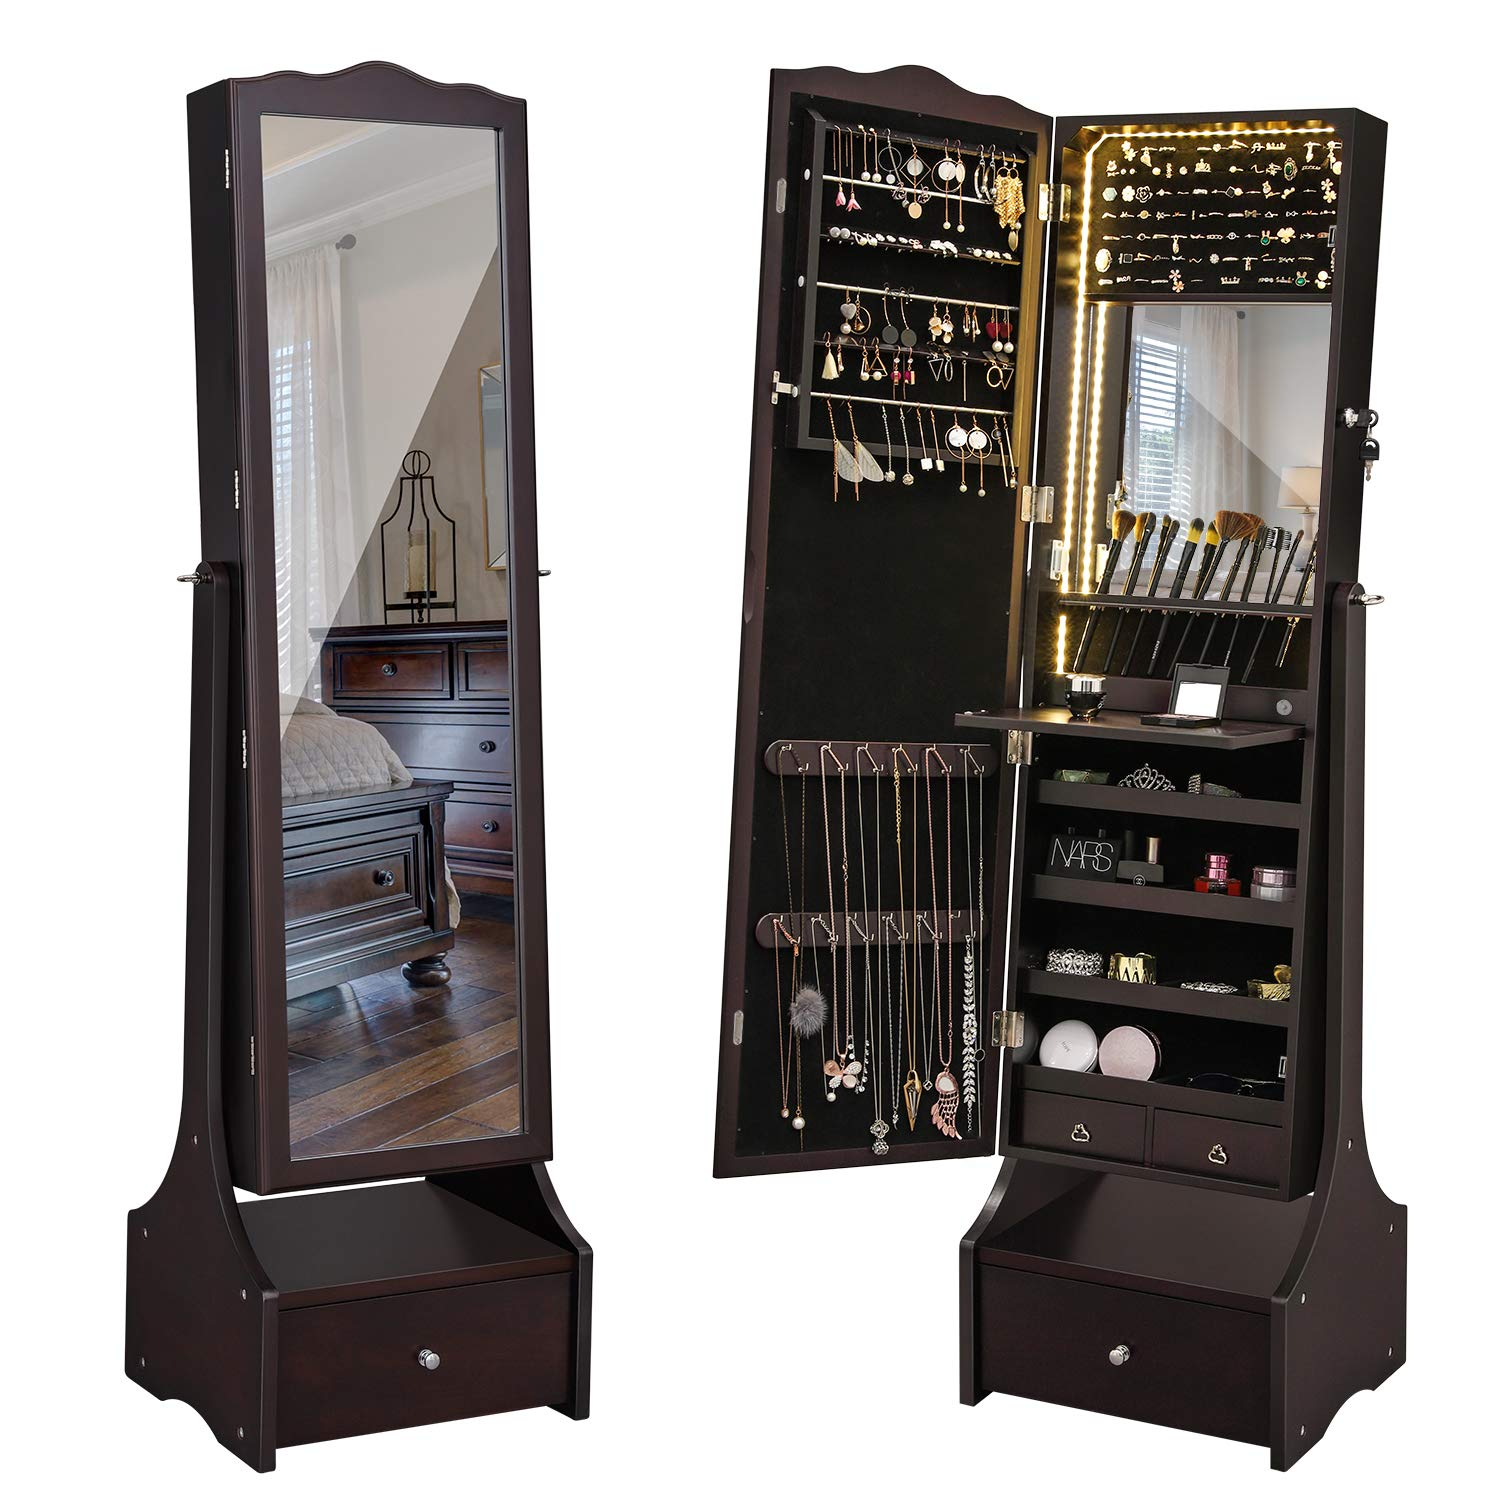 SONGMICS LED Jewelry Cabinet Lockable Jewelry Armoire with Full Length Mirror, Makeup Tray and Large Drawer Base Brown Patented Mother's Day Gift UJJC87BR by SONGMICS (Image #9)